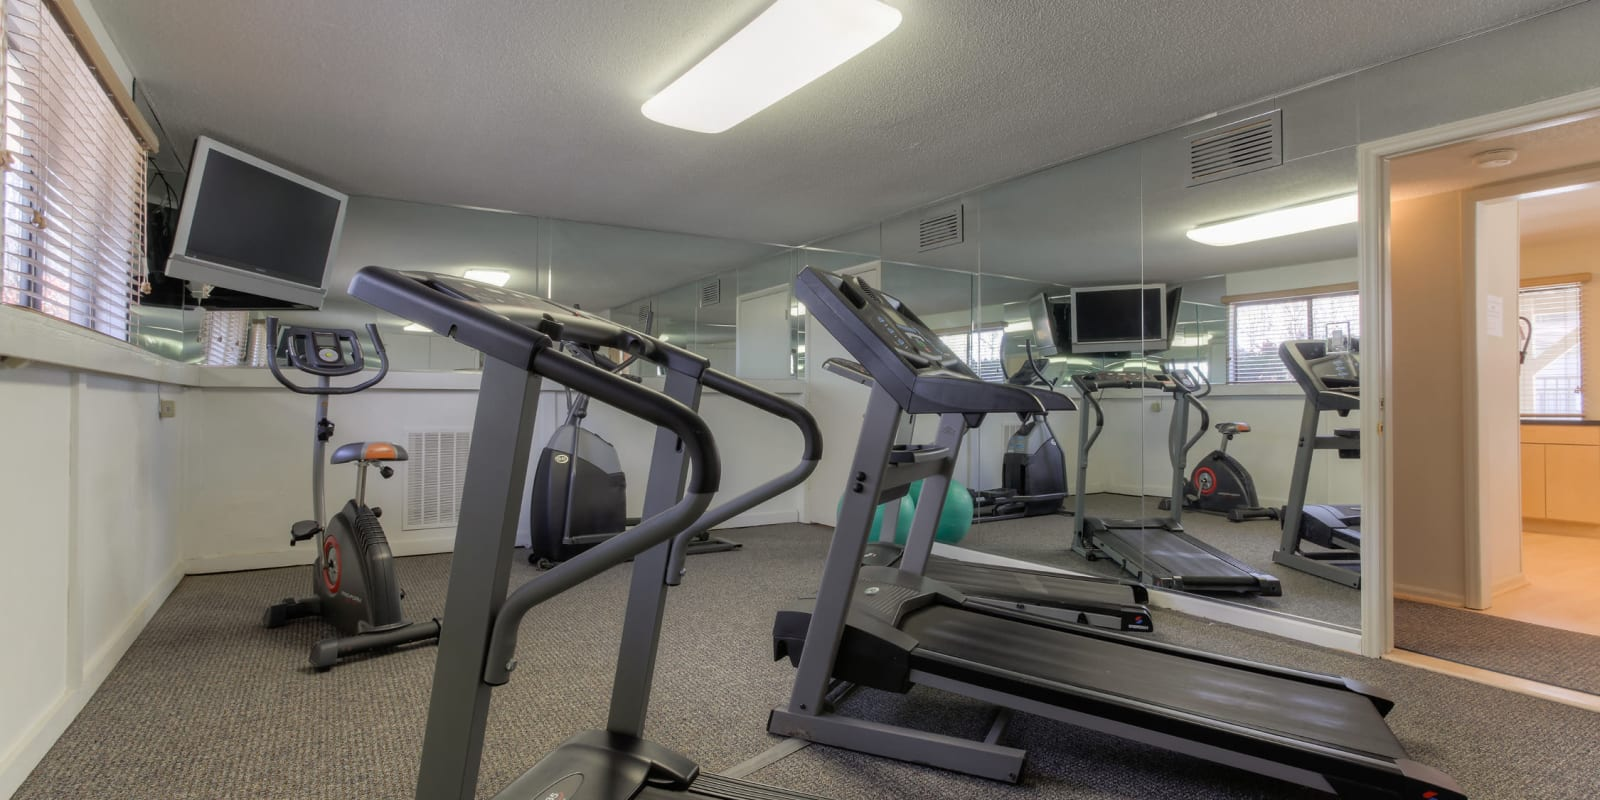 A fitness center with TVs at Enclave at North Point Apartment Homes in Winston Salem, North Carolina